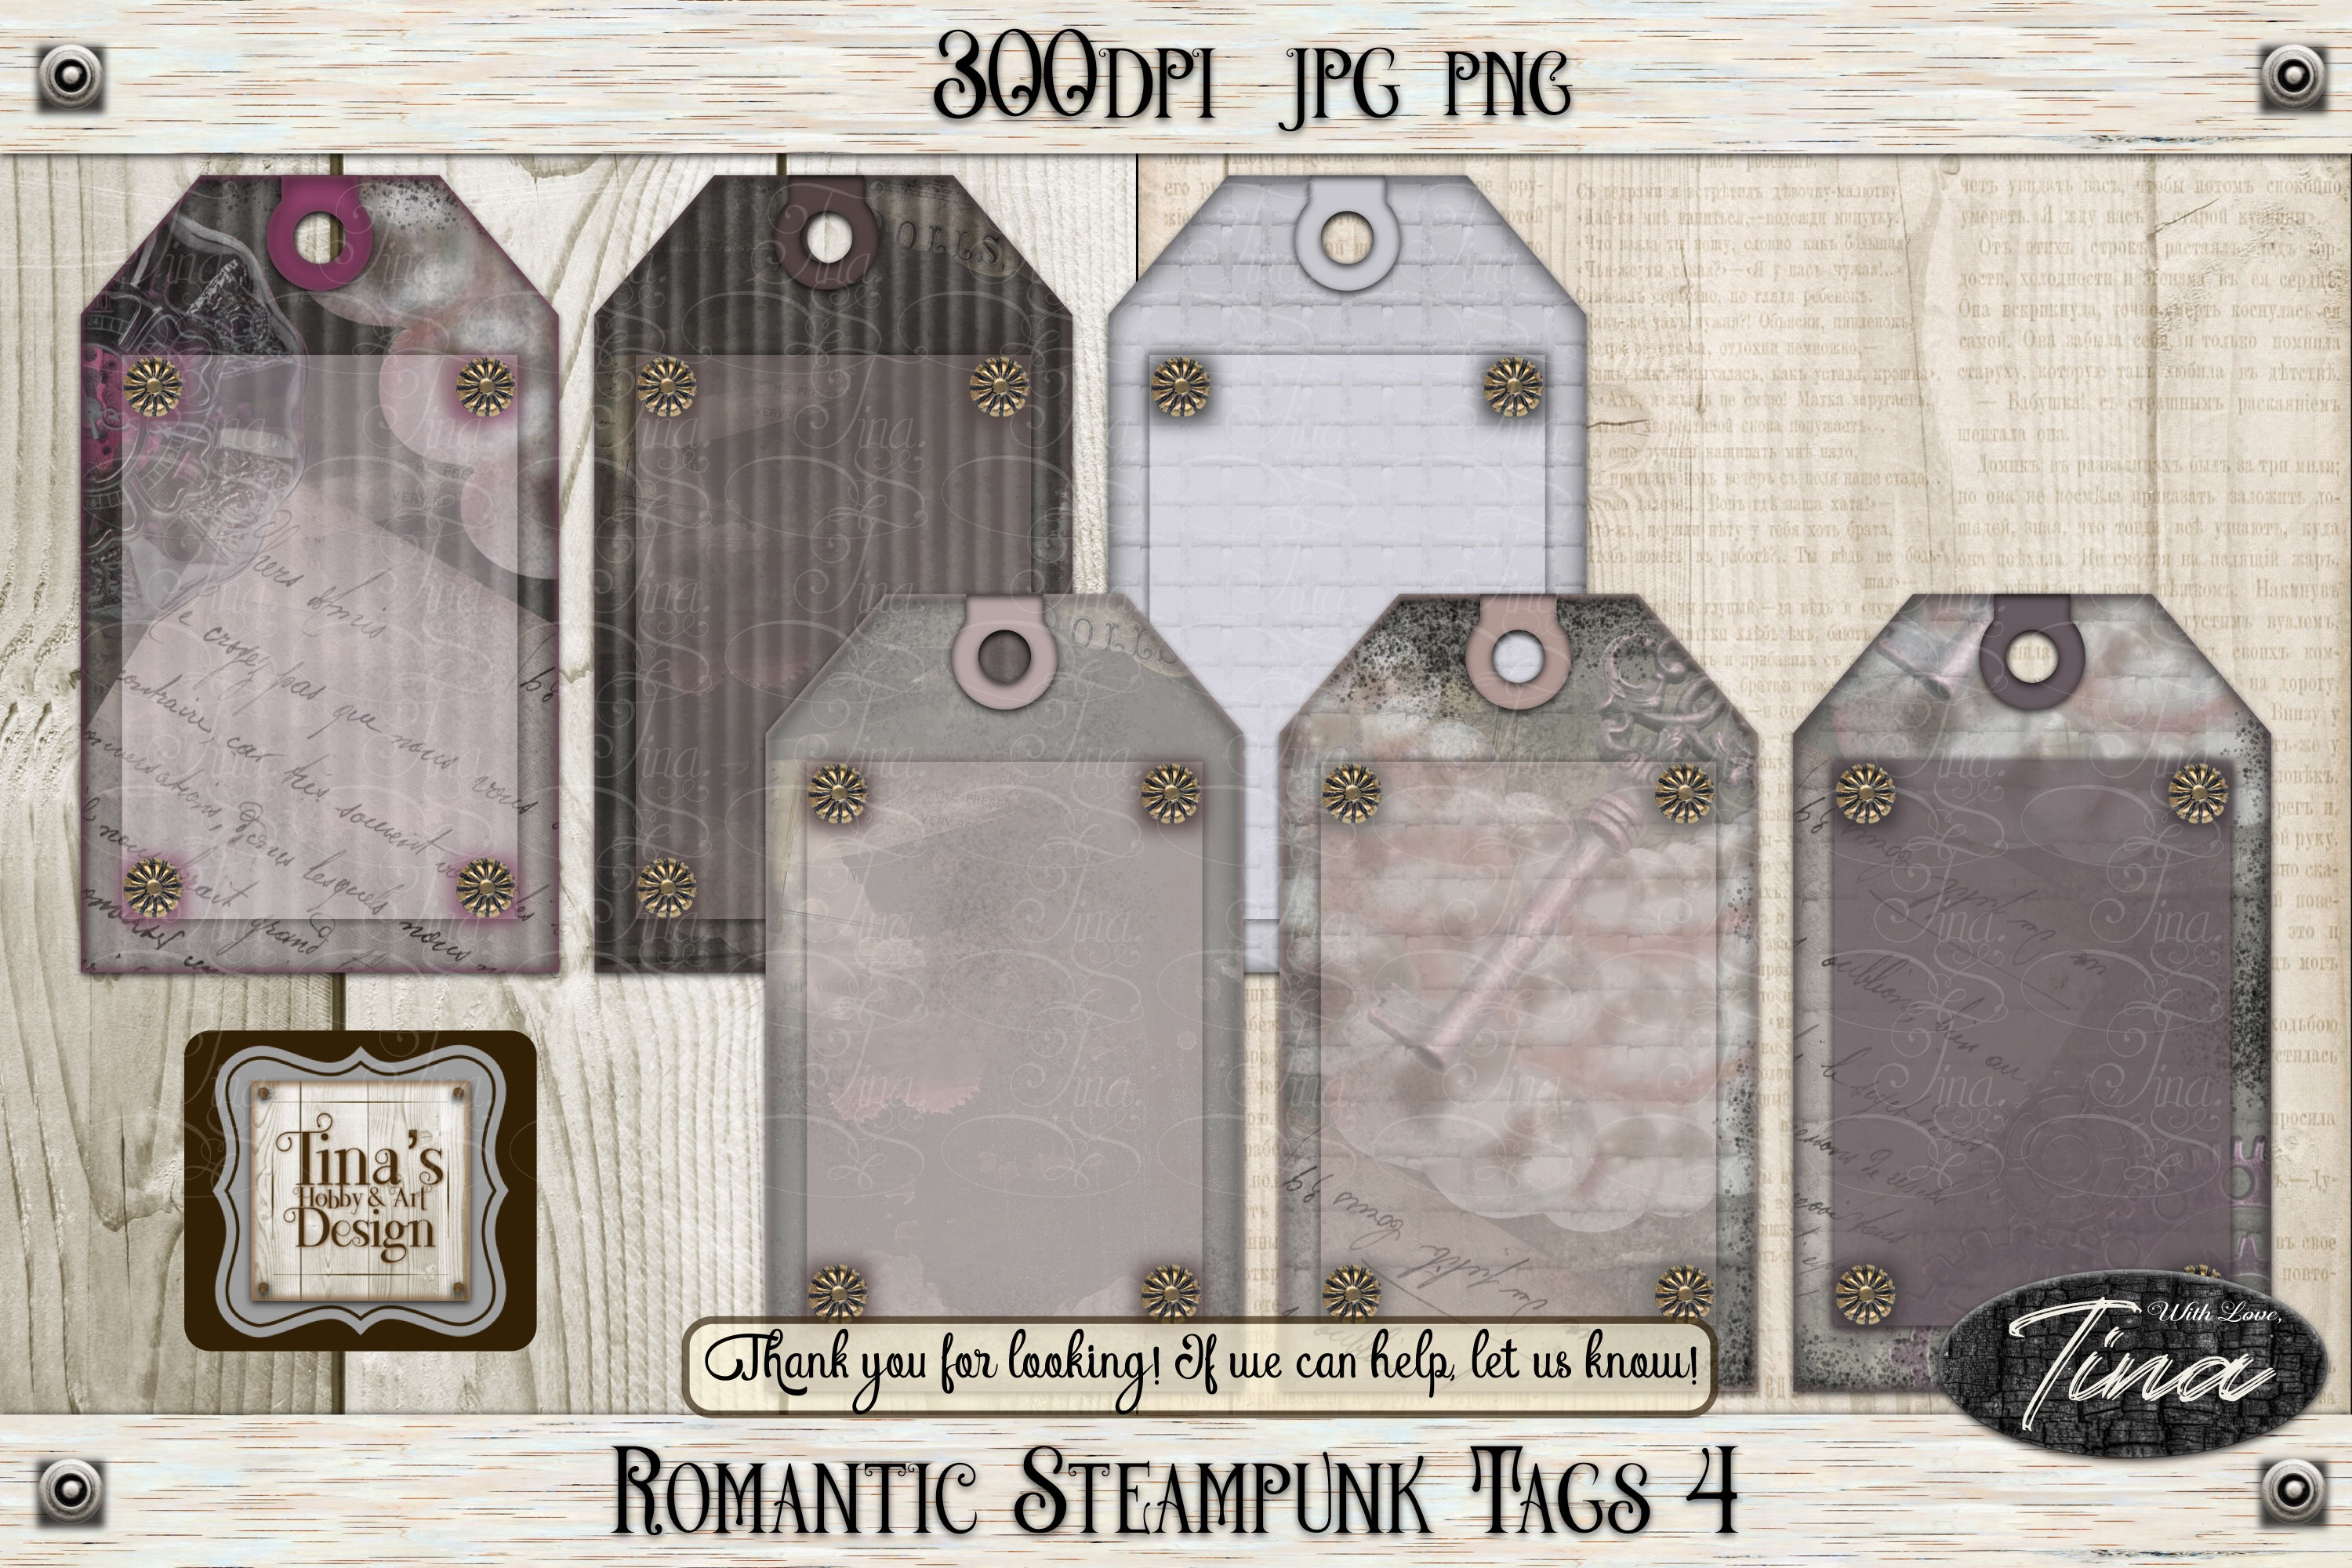 Romantic Steampunk Tags 3 Collage Mauve Grunge 101918RST3 example image 10